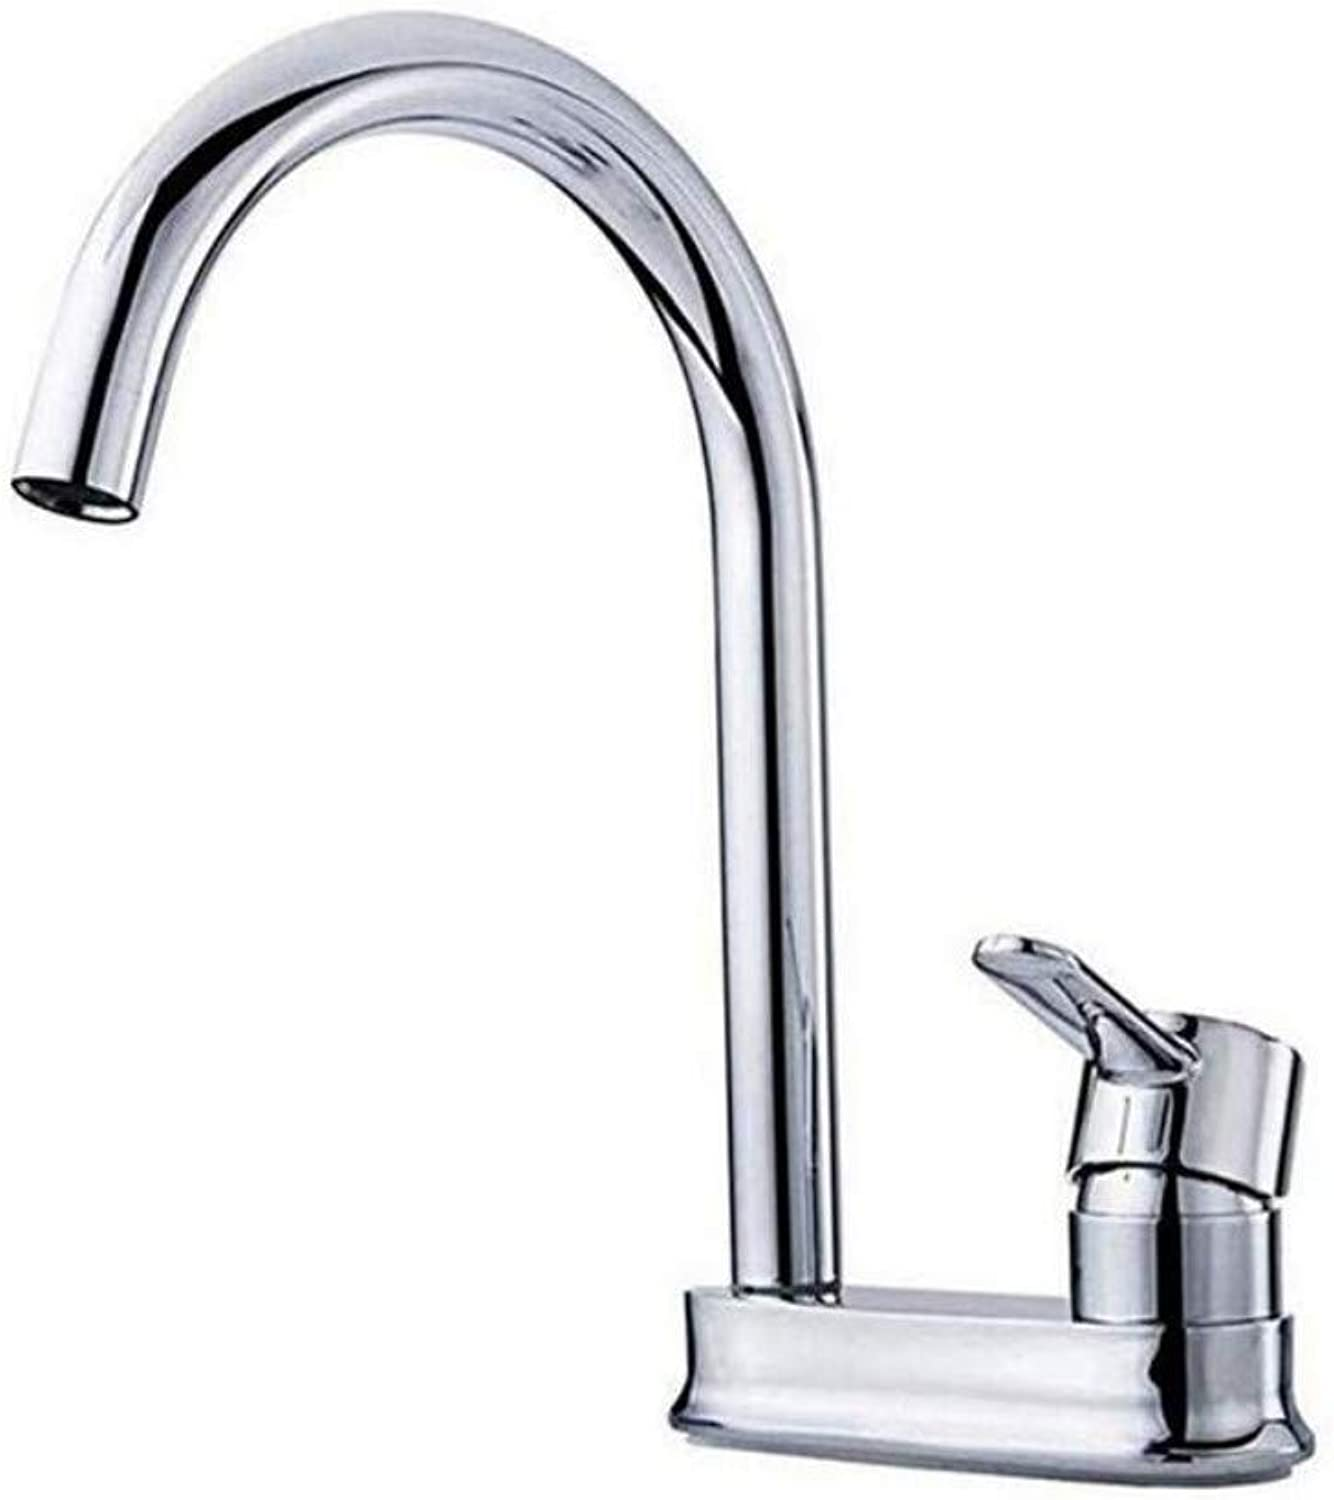 Modern Double Basin Sink Hot and Cold Water Faucetmixing Faucet 360° redating Single Handle Faucet Sink Basin Faucet